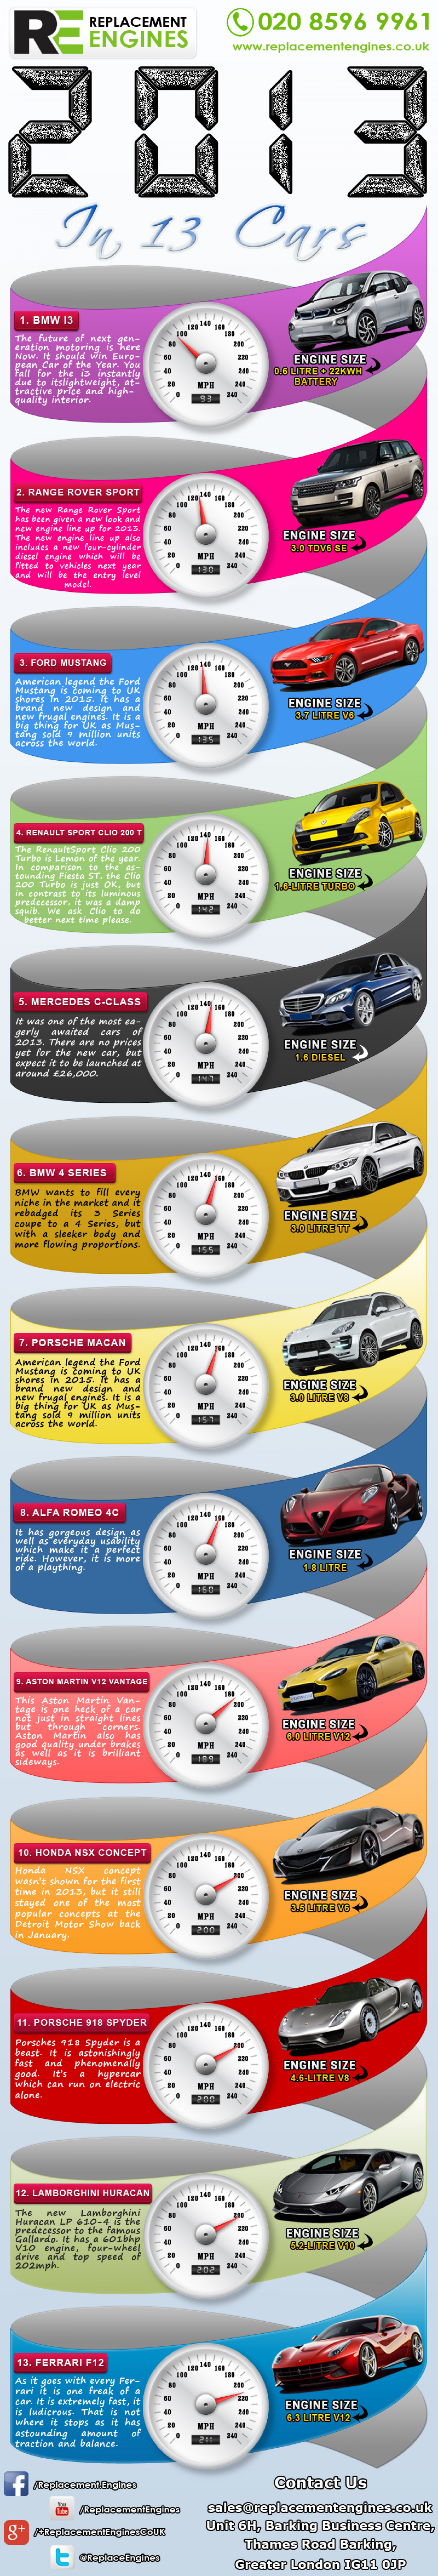 13 Brilliant cars of 2013 Infographic